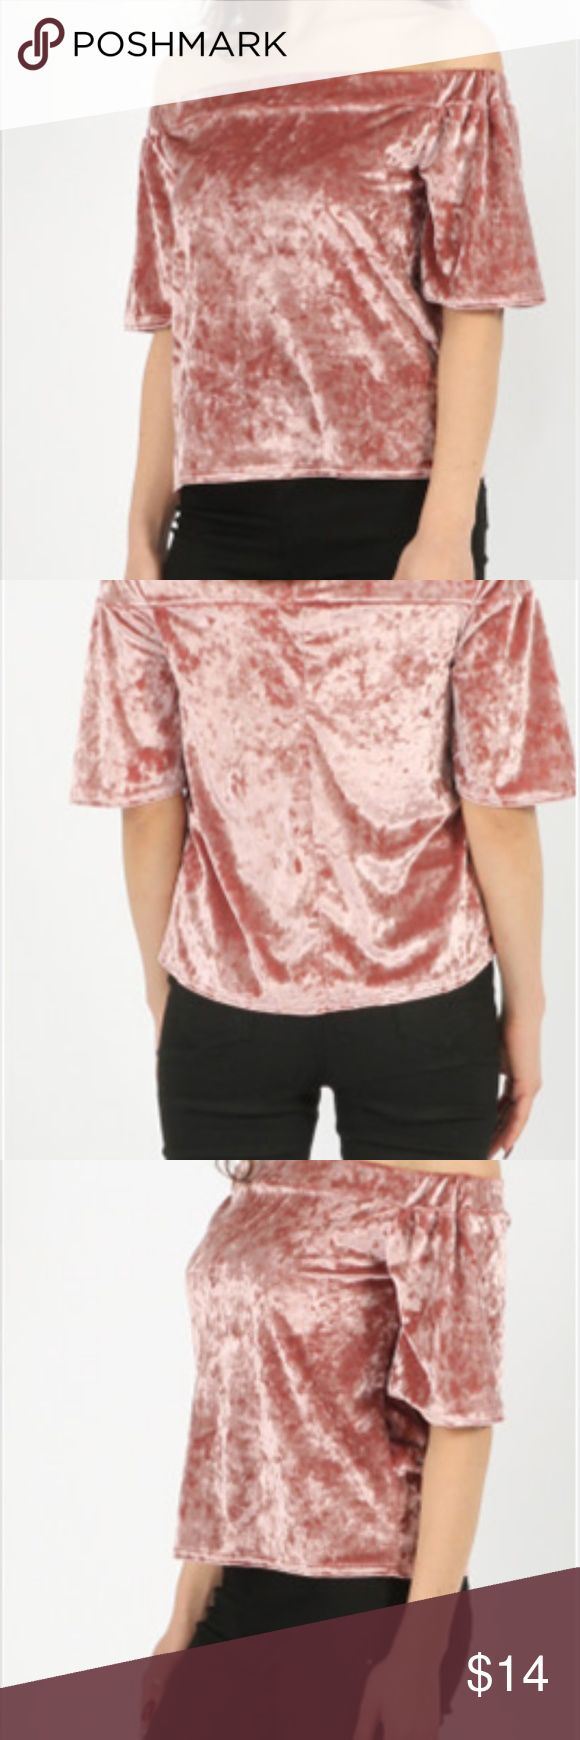 Off-the-Shoulder Velvet Top Off-the-Shoulder Velvet Top - color: Rose Pink  Crushed Velour Bardot Top in Black  Off Shoulder Neckline Crushed Velour Fabric 95% Polyester  Available in 3 colors! - Black, Grey, & Rose Pink  BRAND NEW! NWT!! Never been worn!! Comes from my online boutique - 'Rock N Threads' Tops Blouses